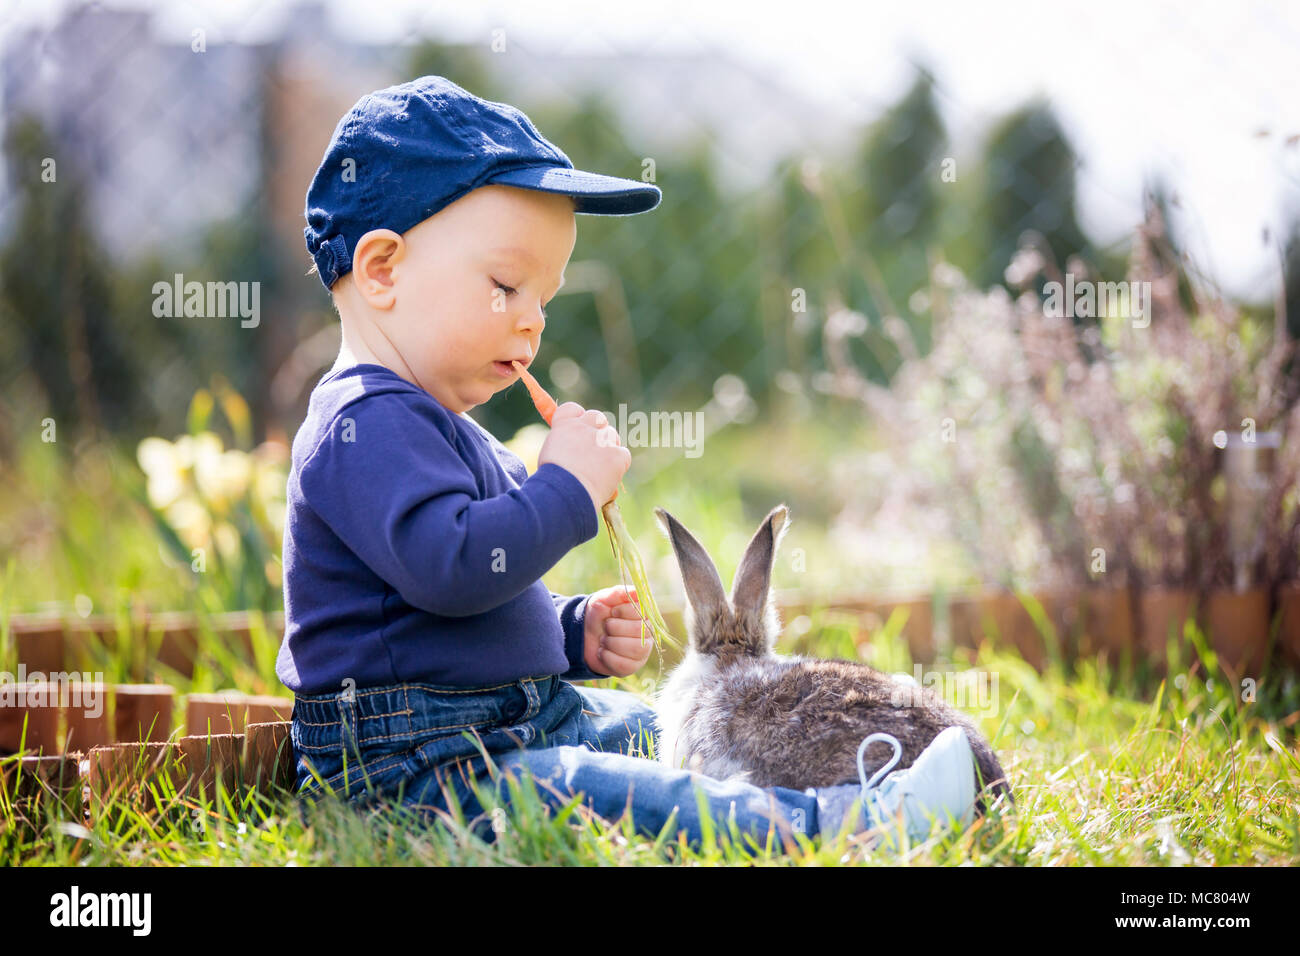 Cute Little Baby Boy Child Feeding Little Bunny With Carrots In